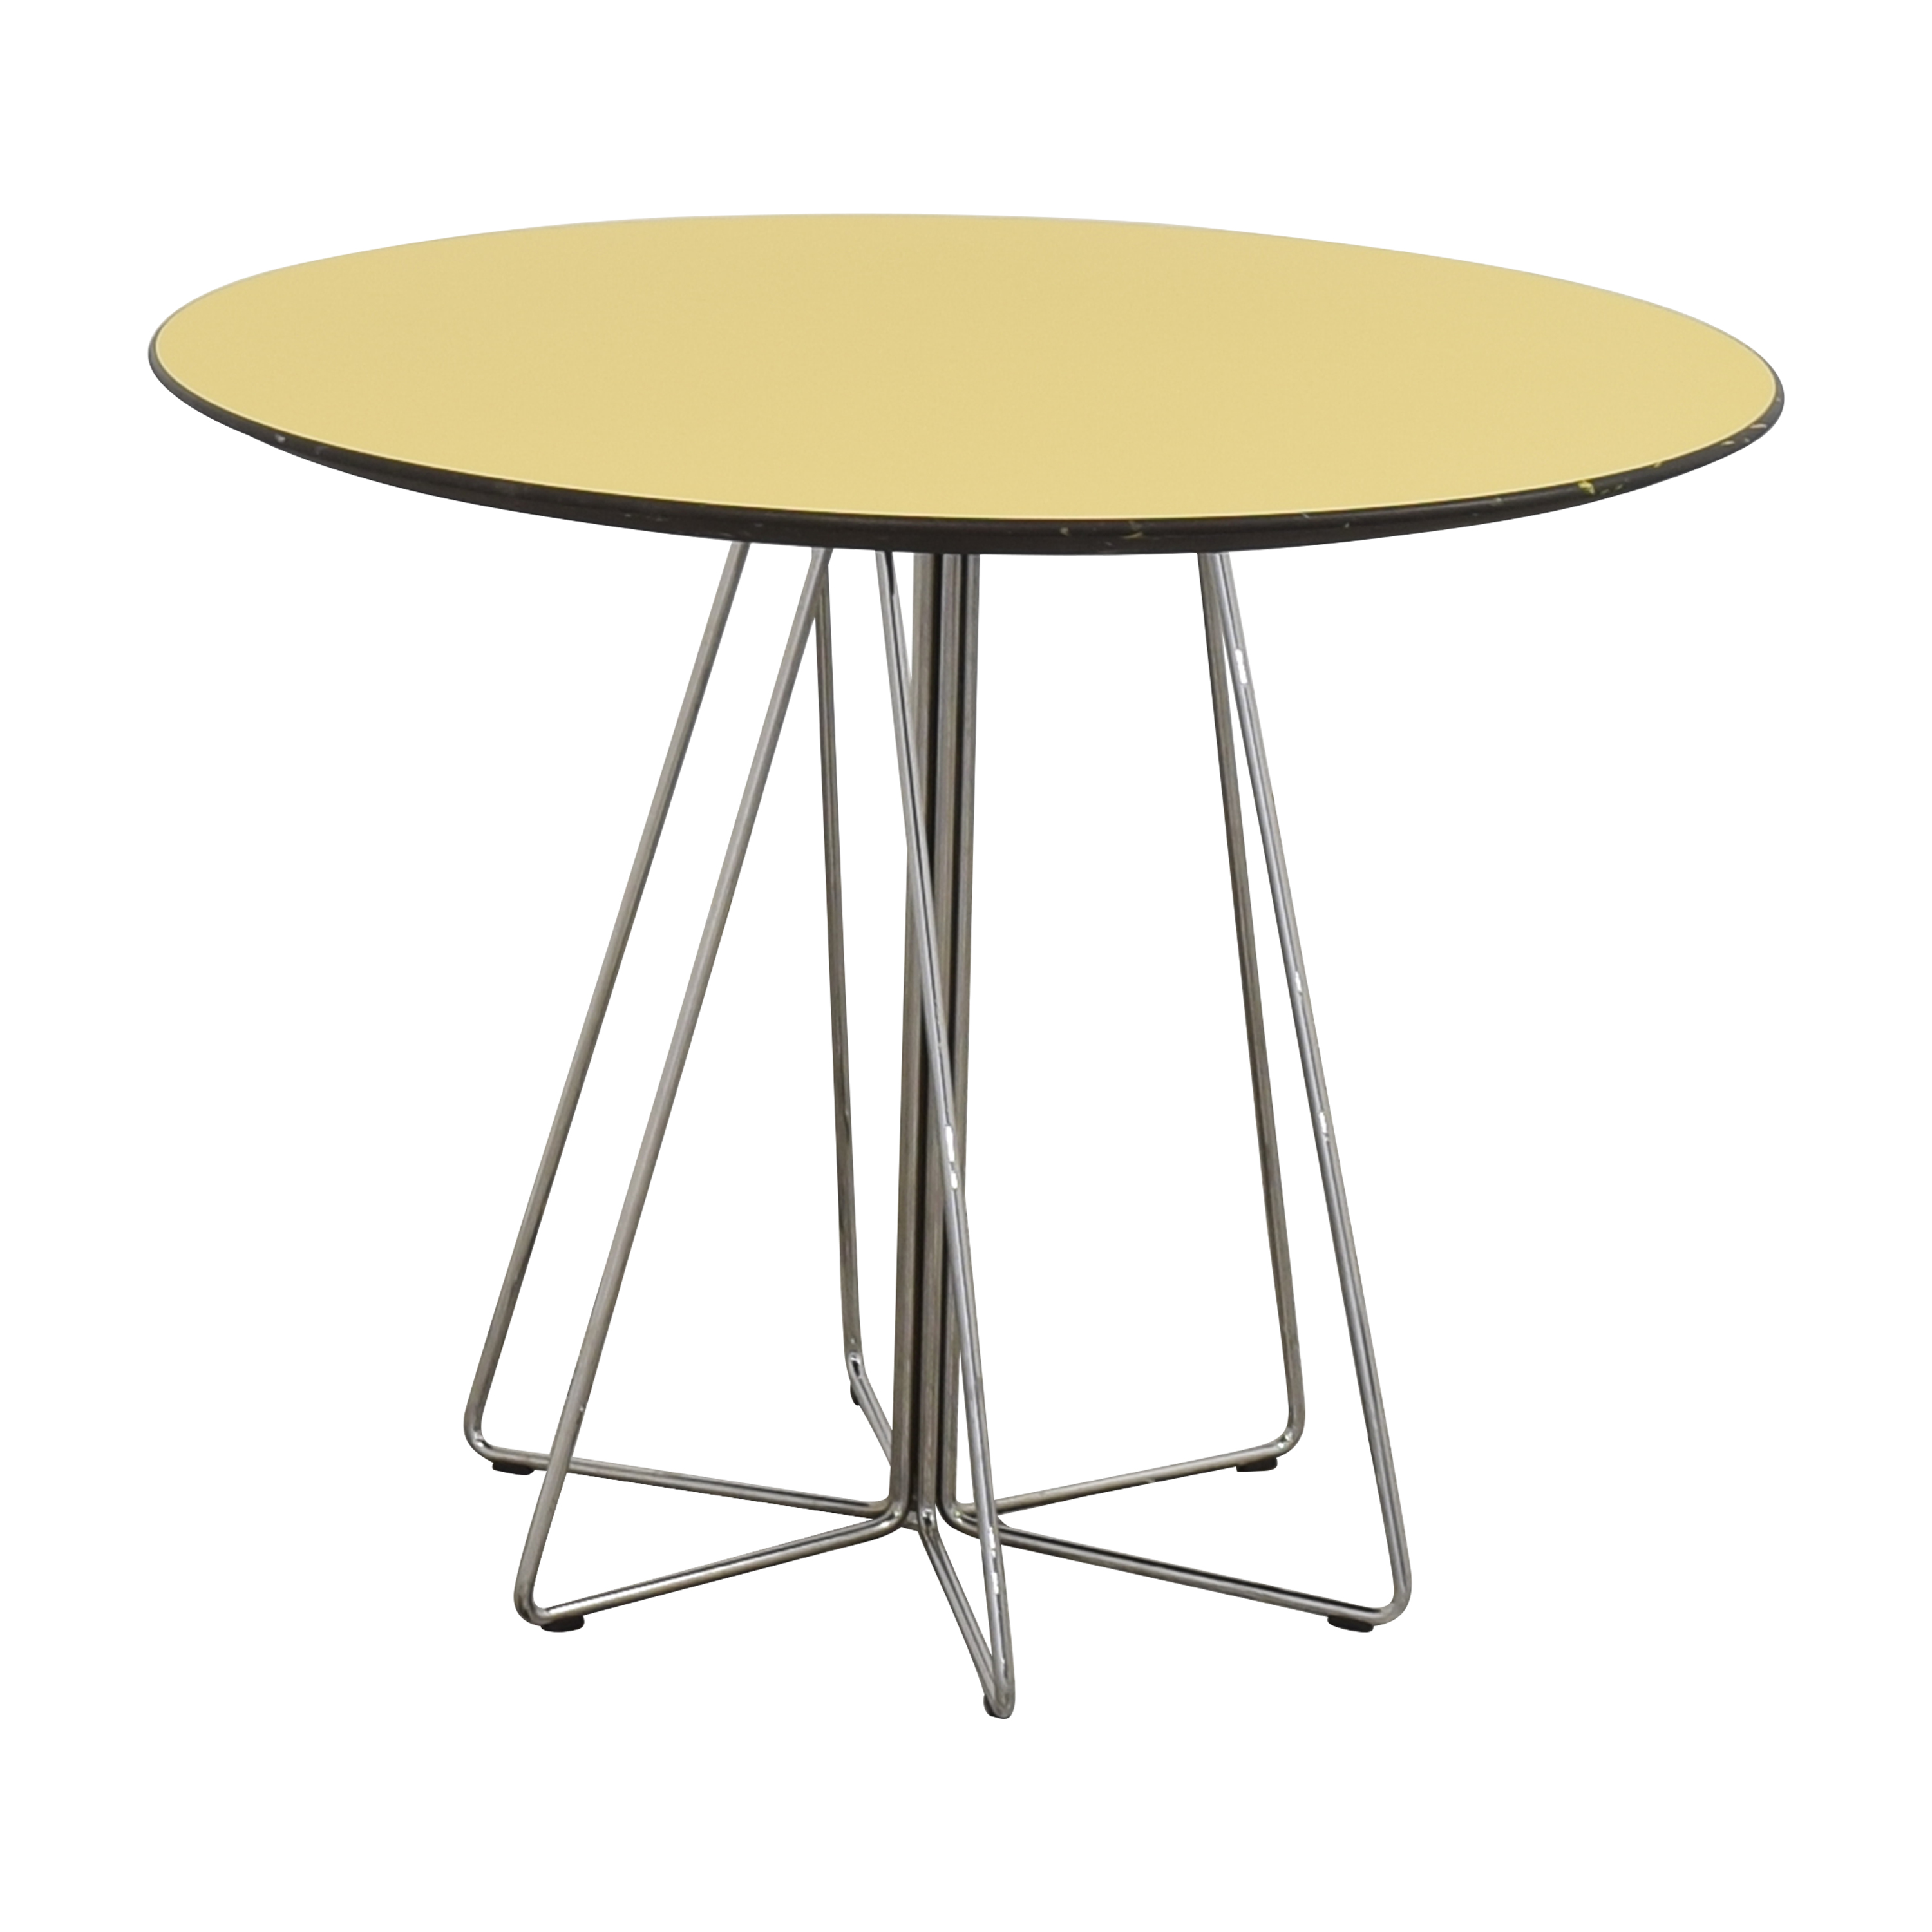 Knoll Vingelli Designs Paperclip Table / Dinner Tables